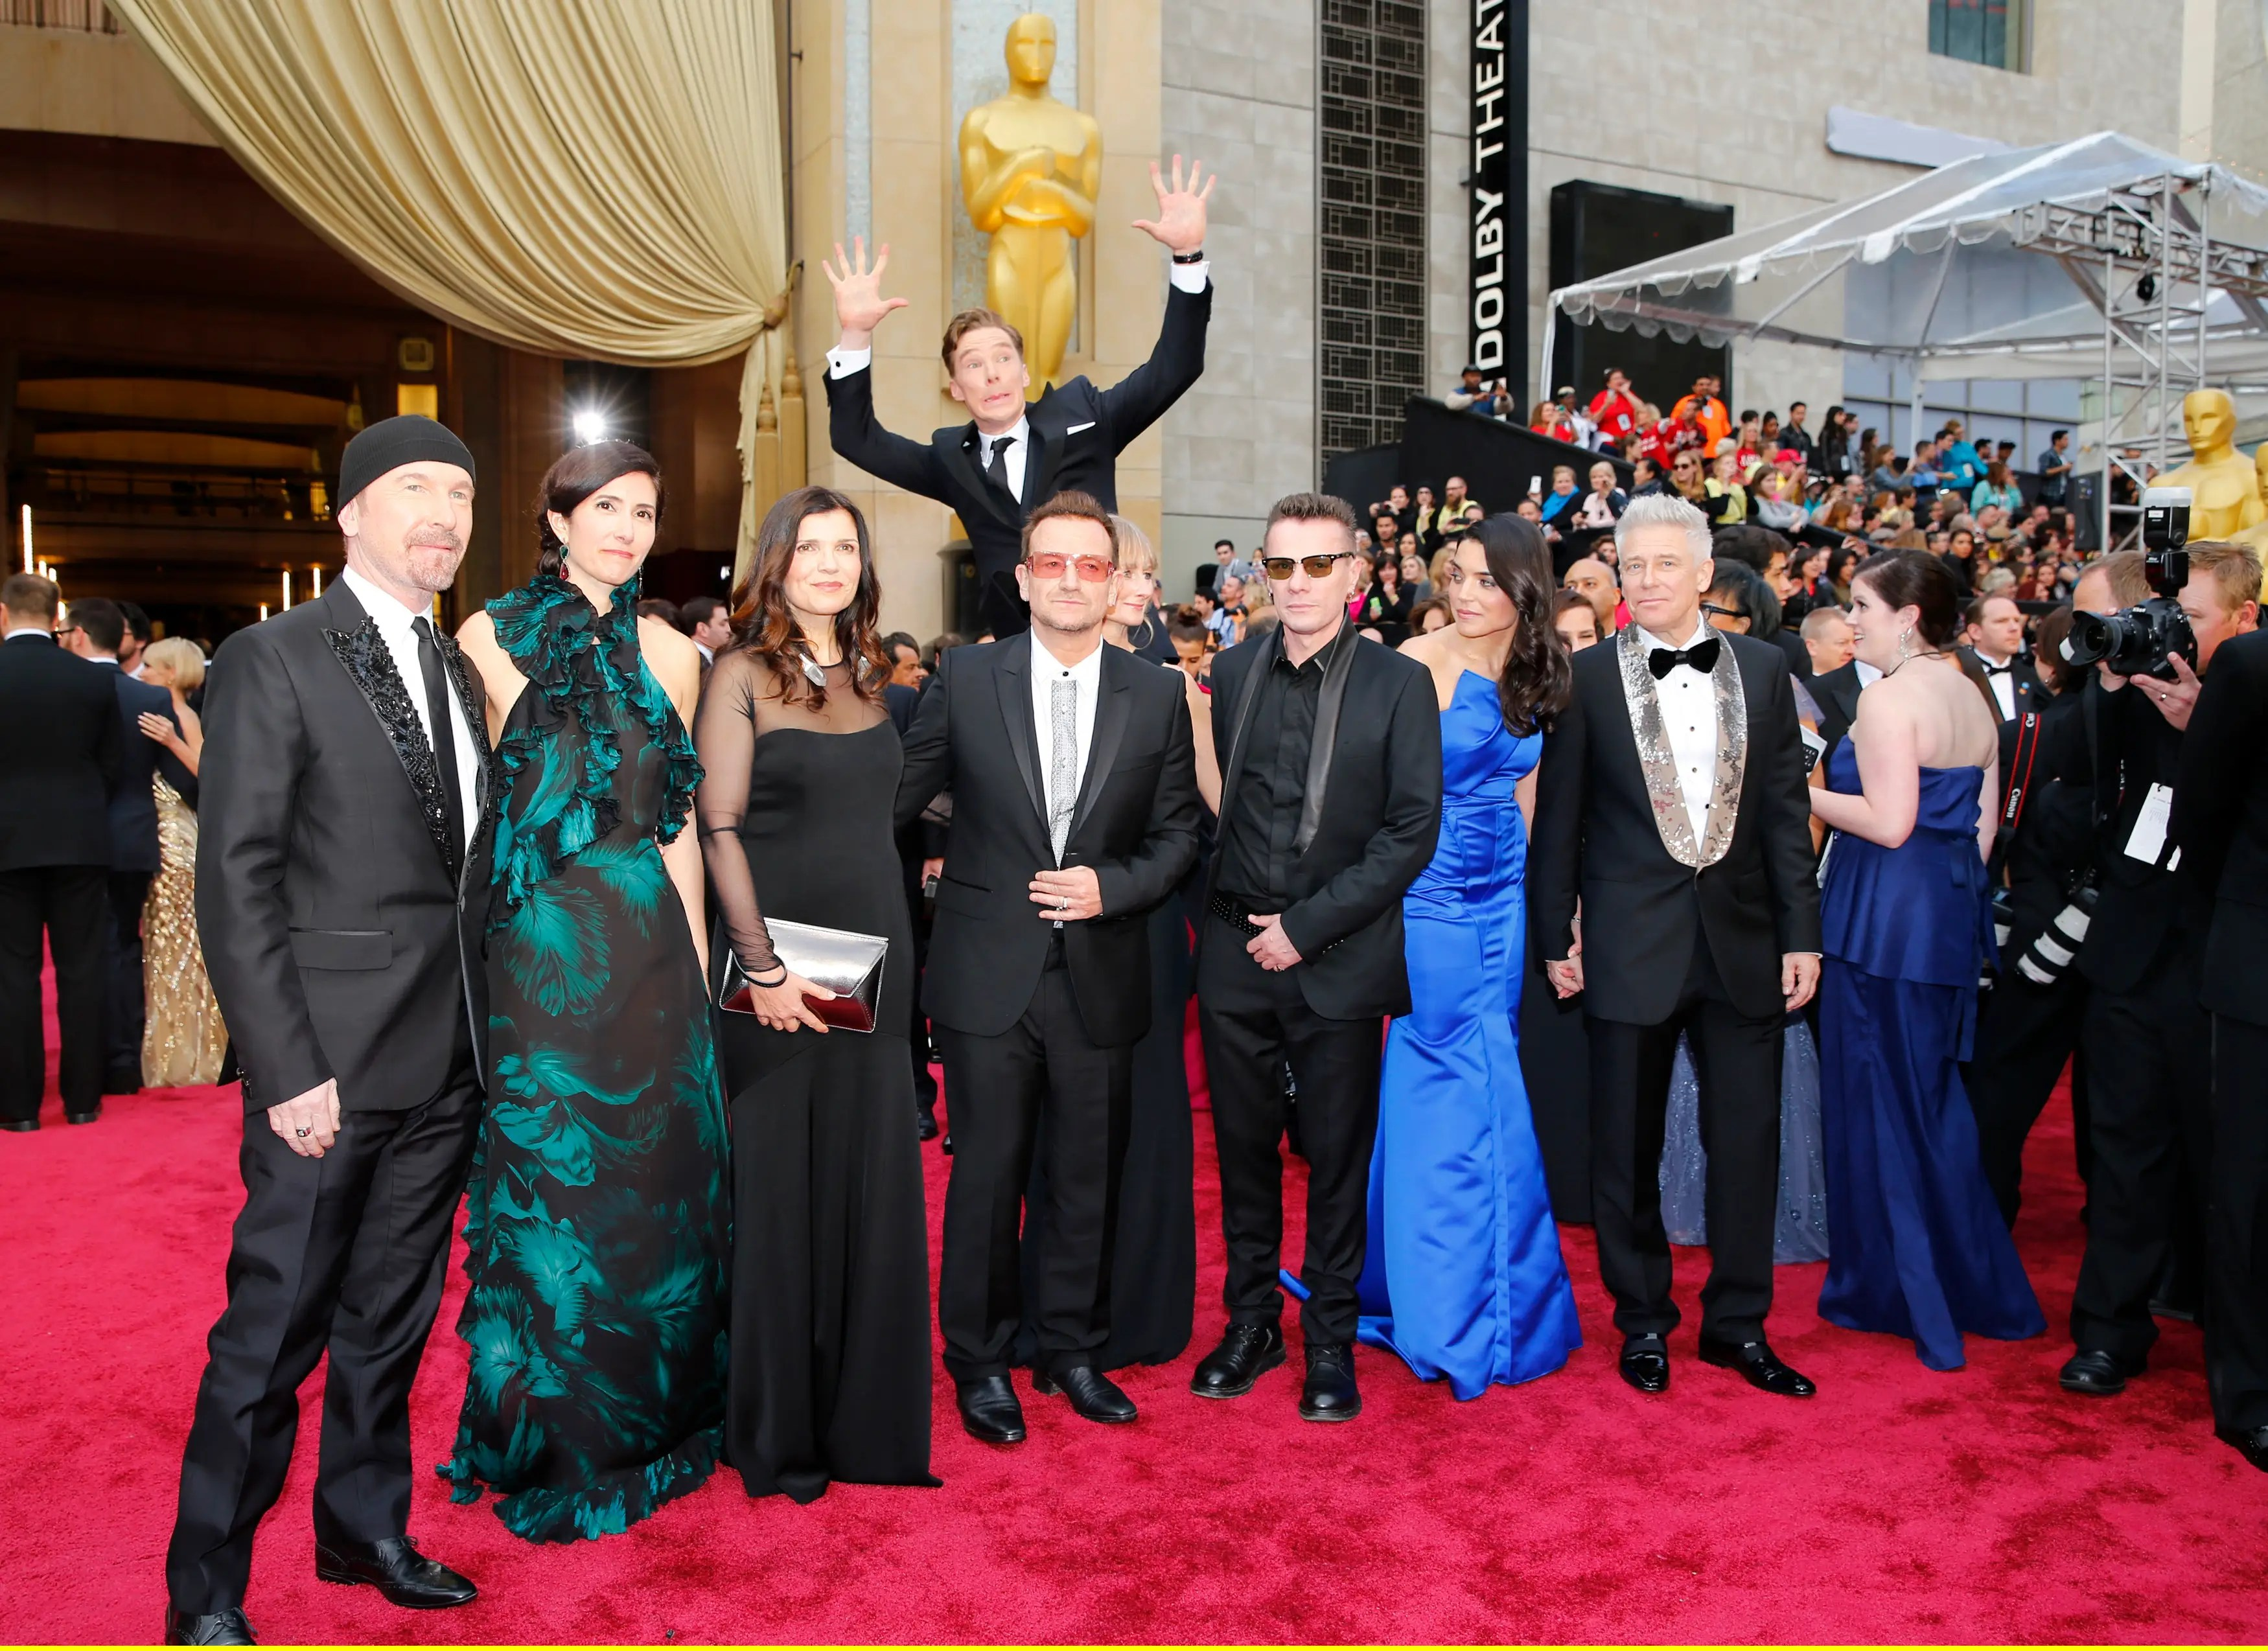 Sorry Meryl, but Oscar red carpet glory goes to Benedict Cumberbatch for photobombing U2.